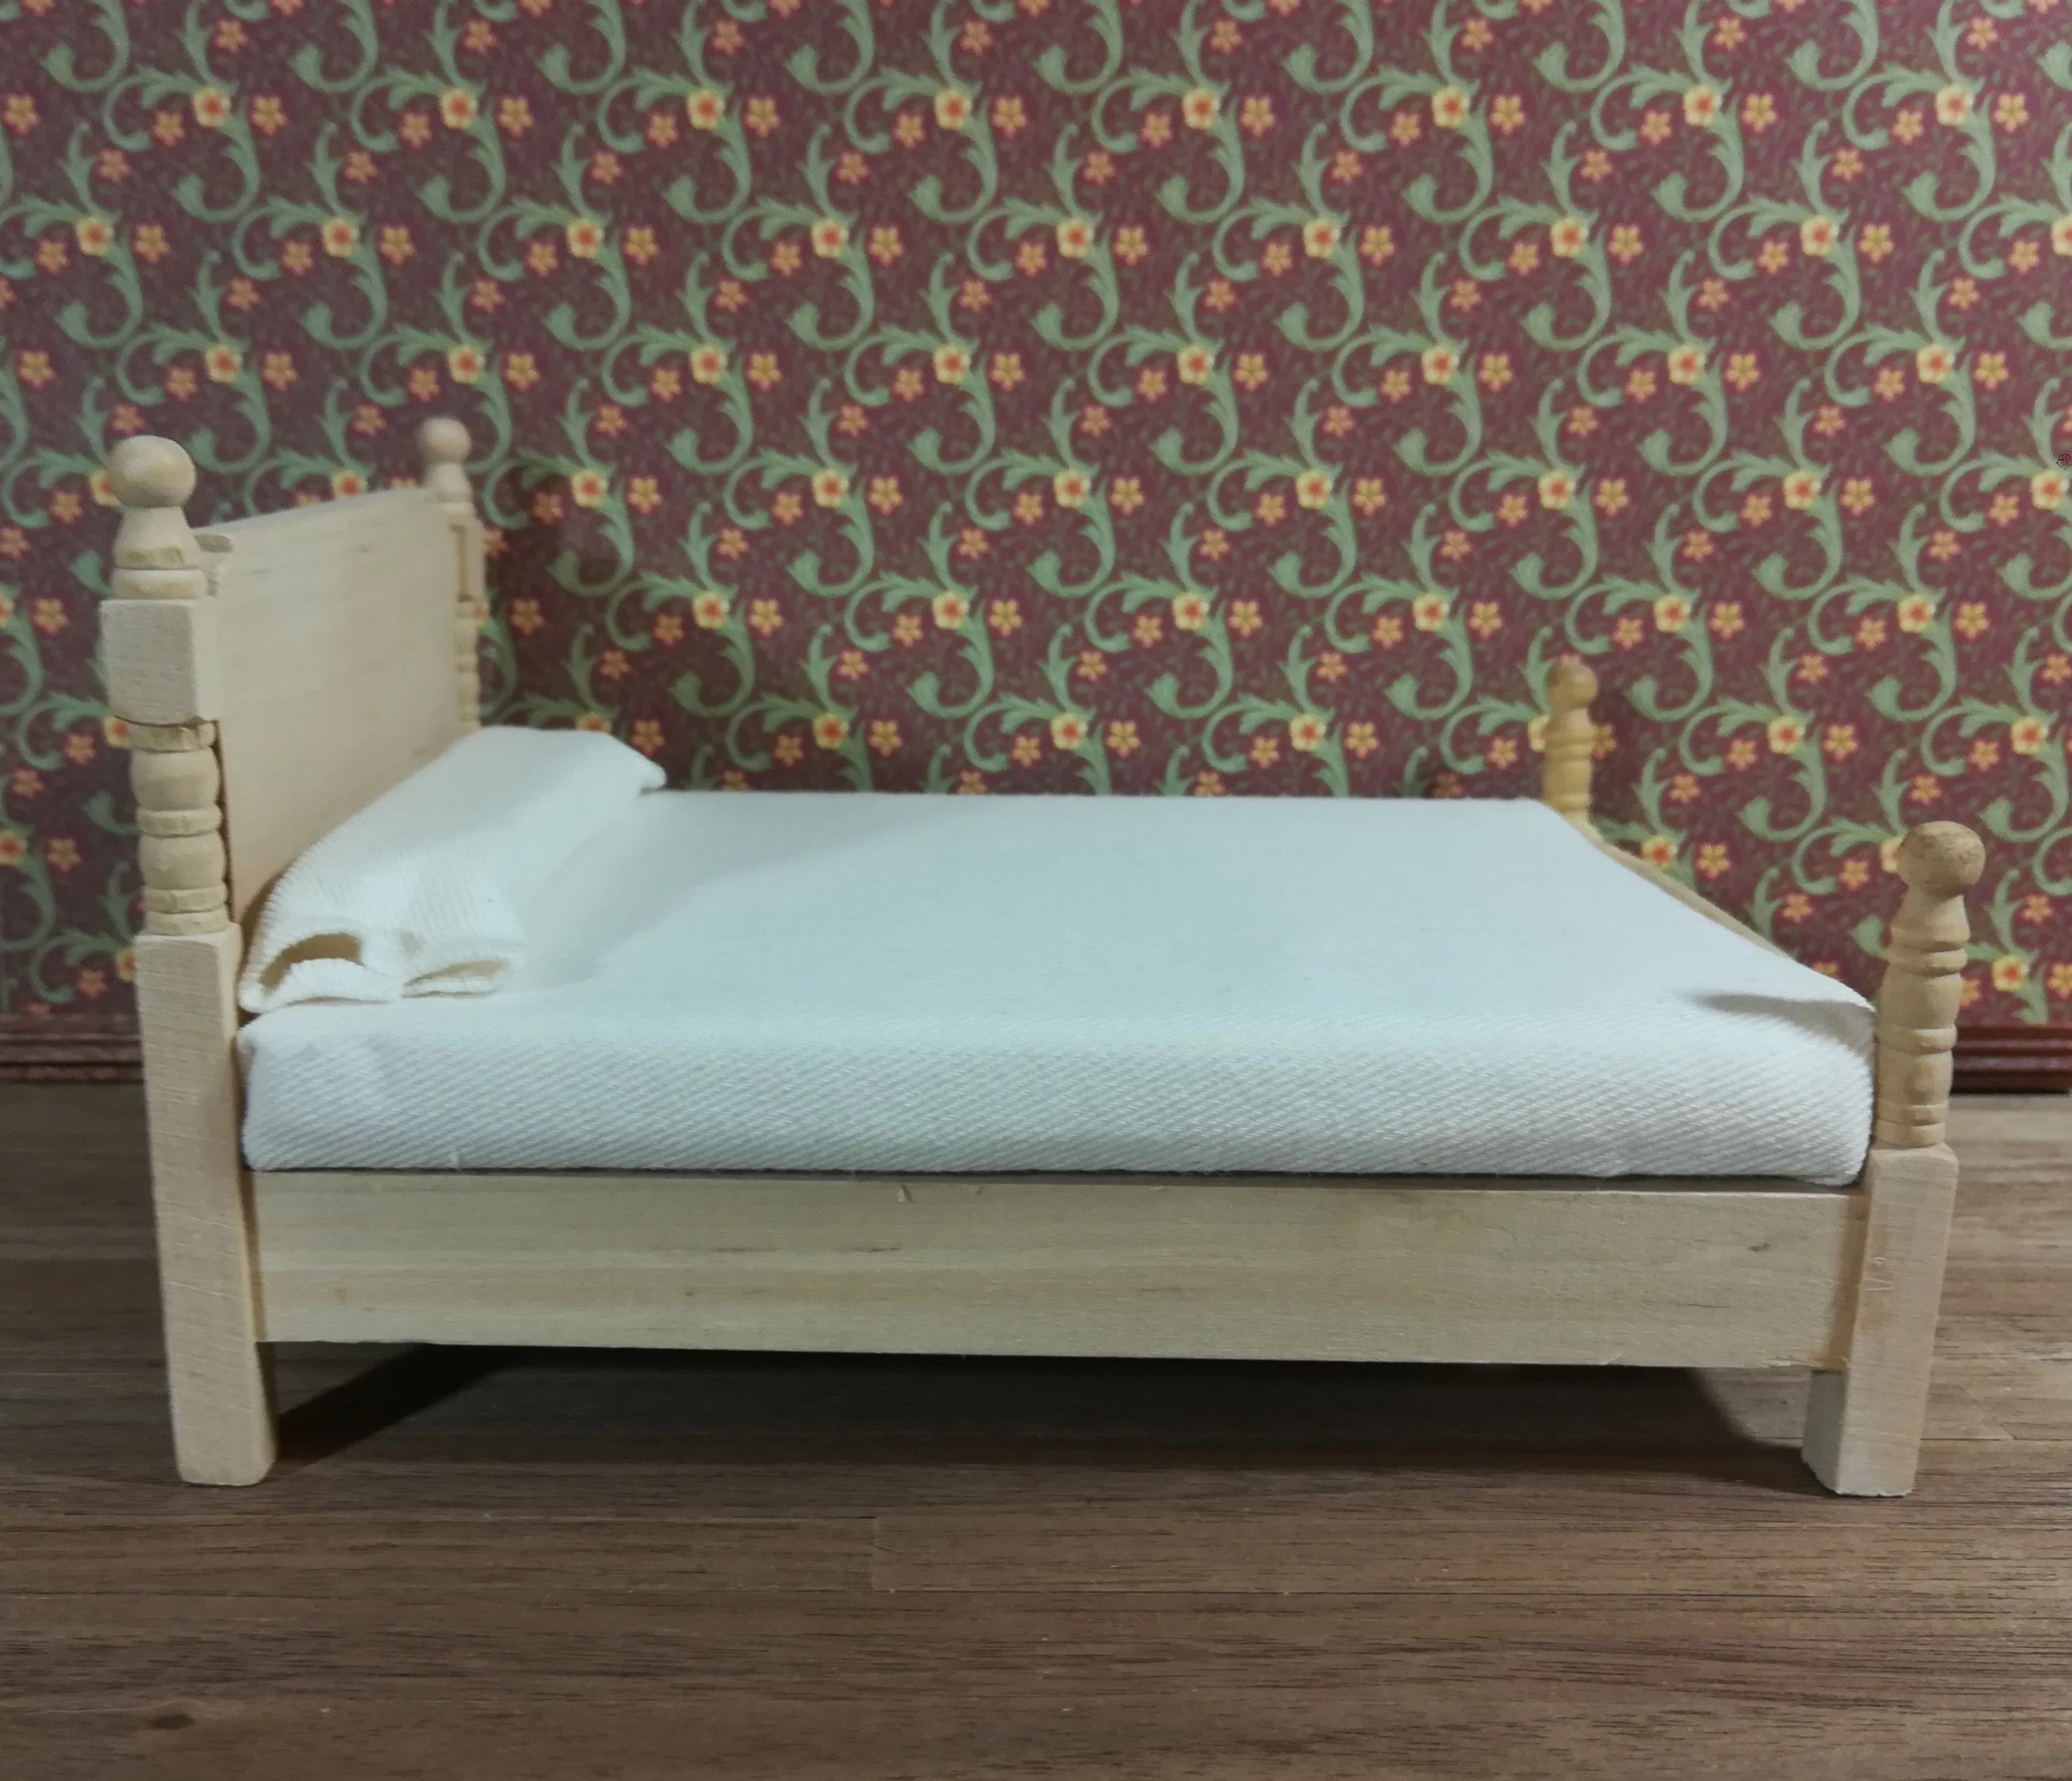 Chaise Design Miniature Dollhouse Miniature Double Bed With Mattress Unfinished 1 12